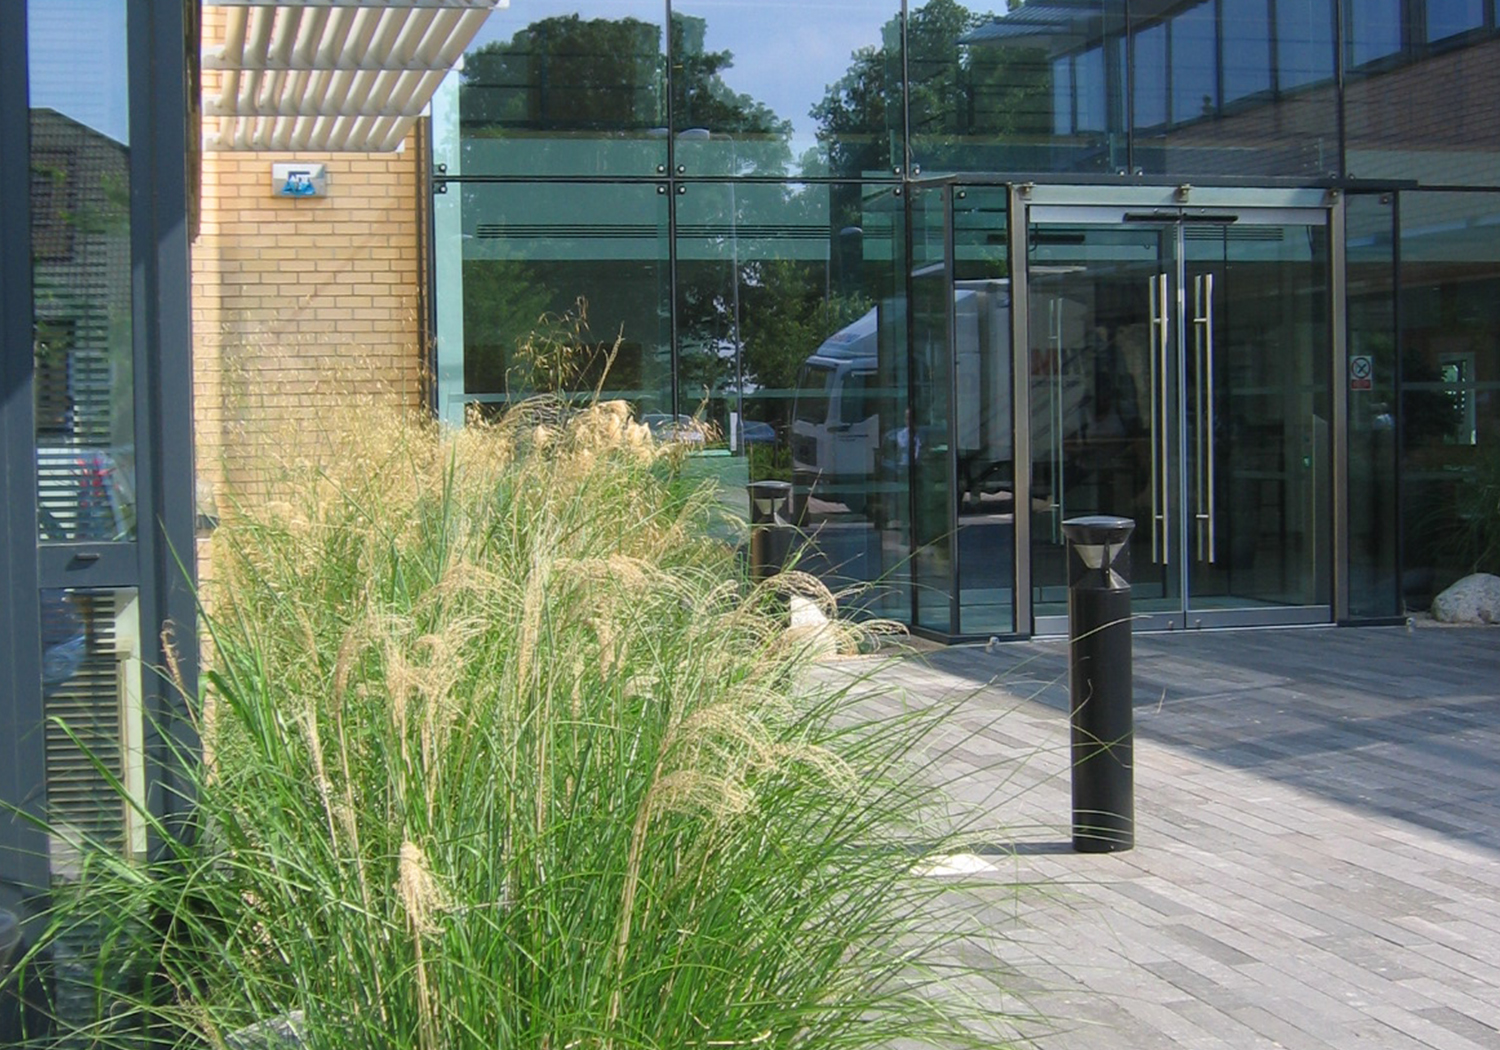 Projects-CommInd-CapitalPark-EntranceGrasses-1500x1050